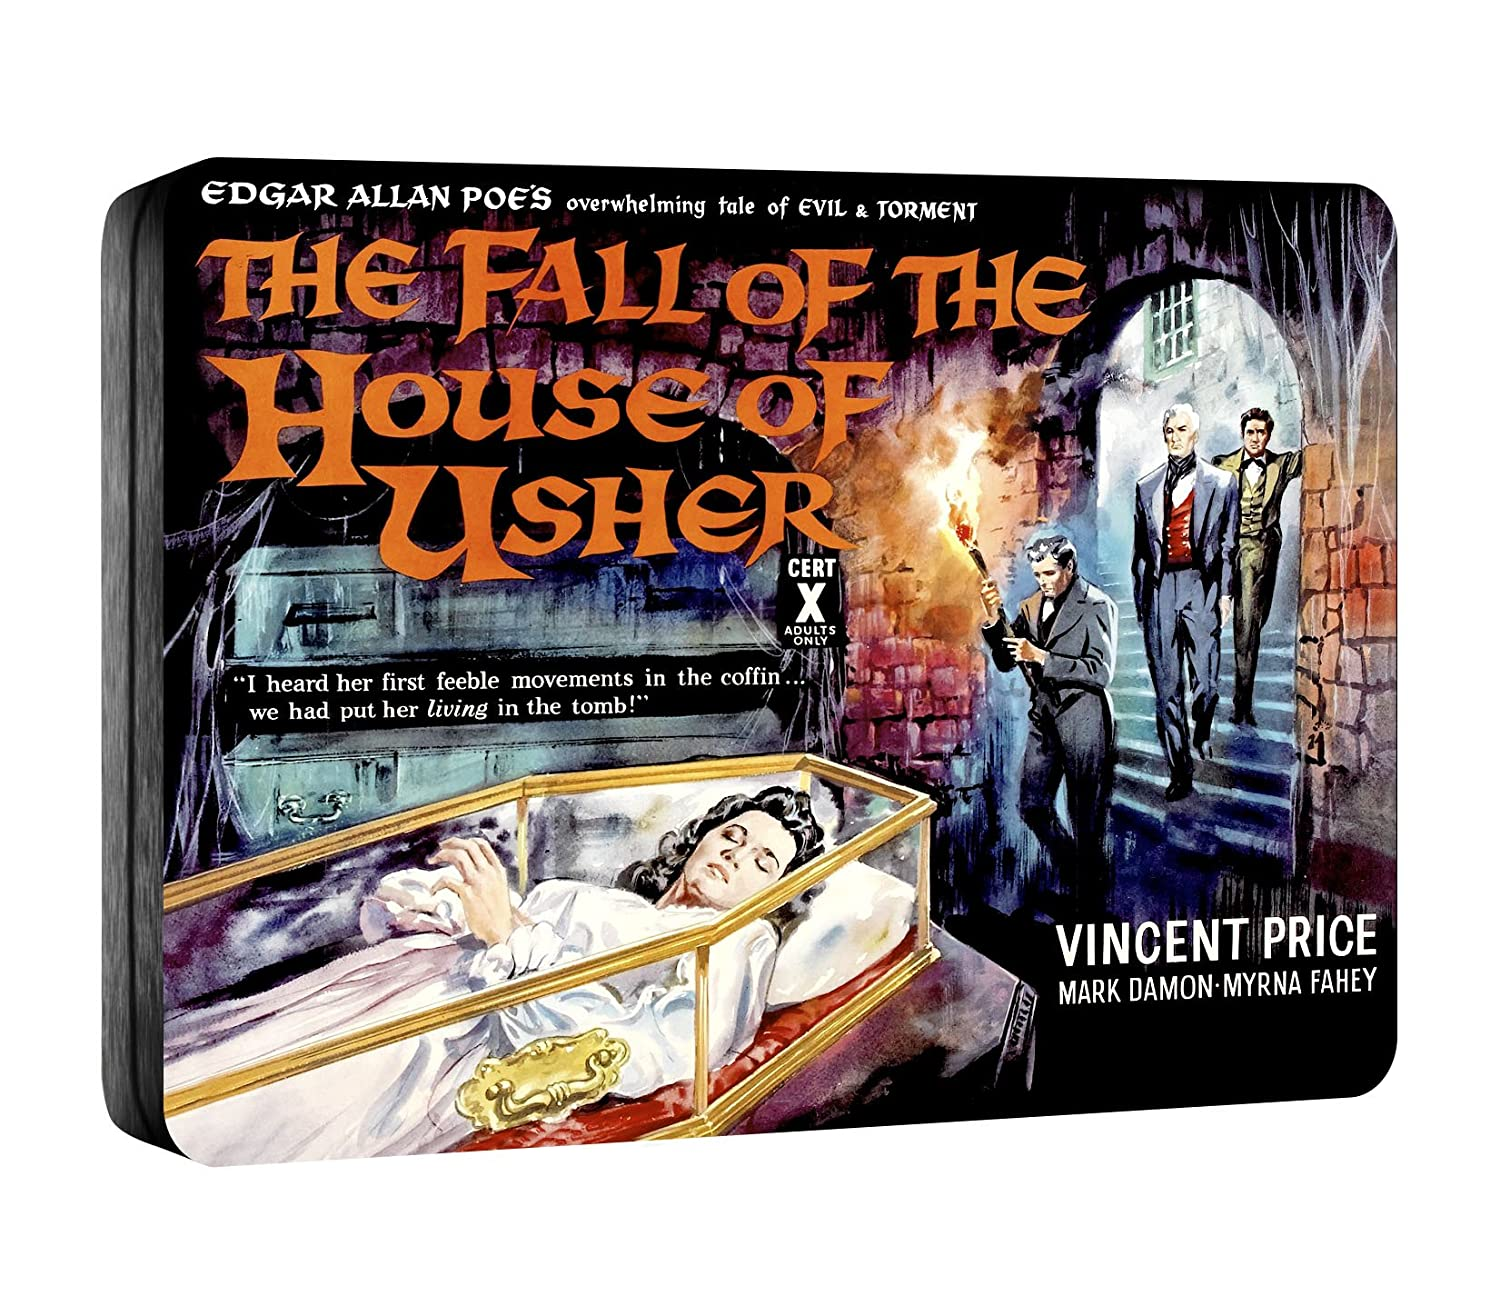 fall of the house of usher steelbook blu ray amazon co uk fall of the house of usher steelbook blu ray amazon co uk vincent price mark damon myrna fahey roger corman dvd blu ray